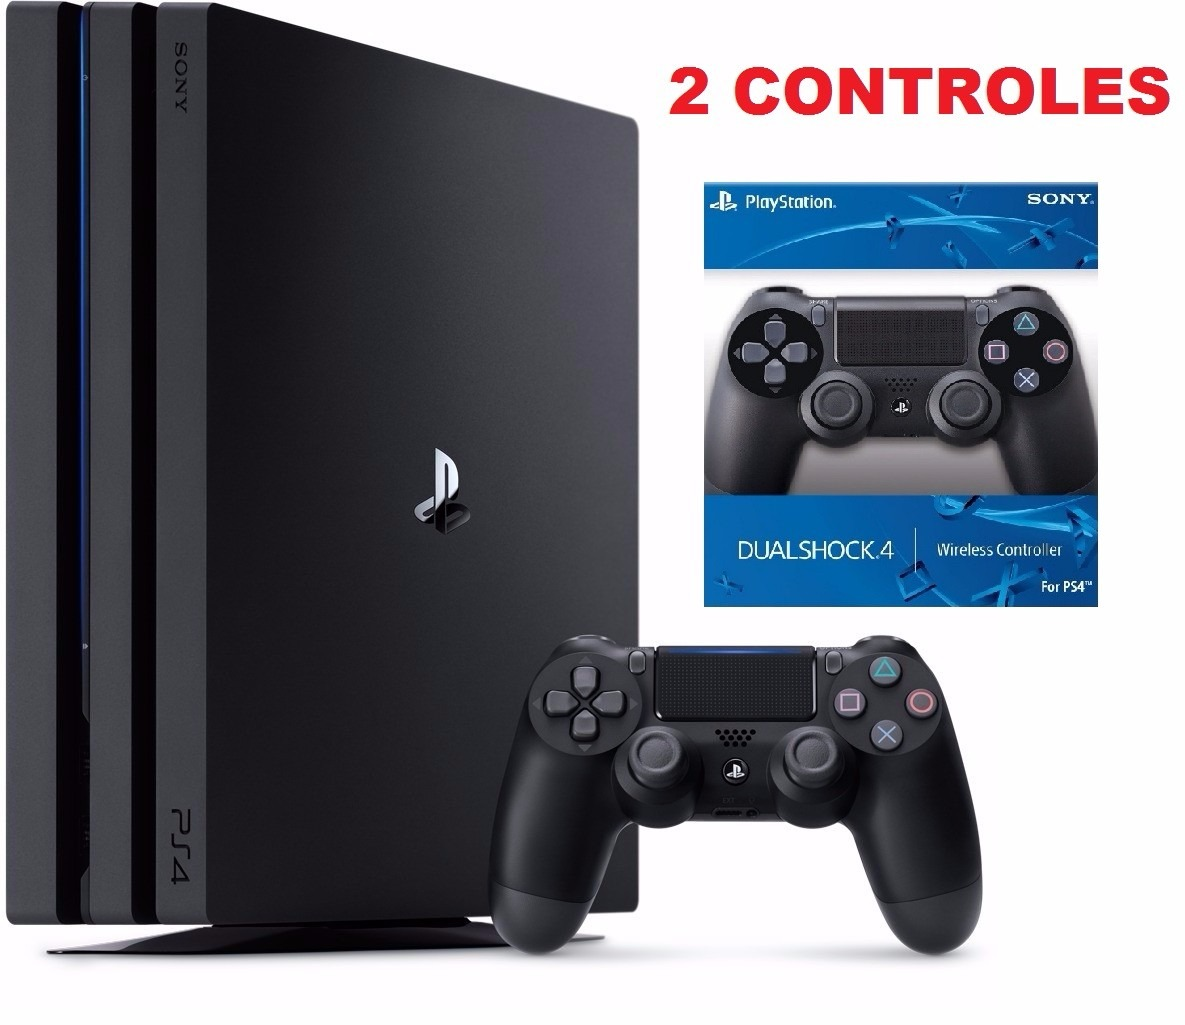 ps4 console playstation 4 pro 1tb new ps4 4k 2 controles. Black Bedroom Furniture Sets. Home Design Ideas